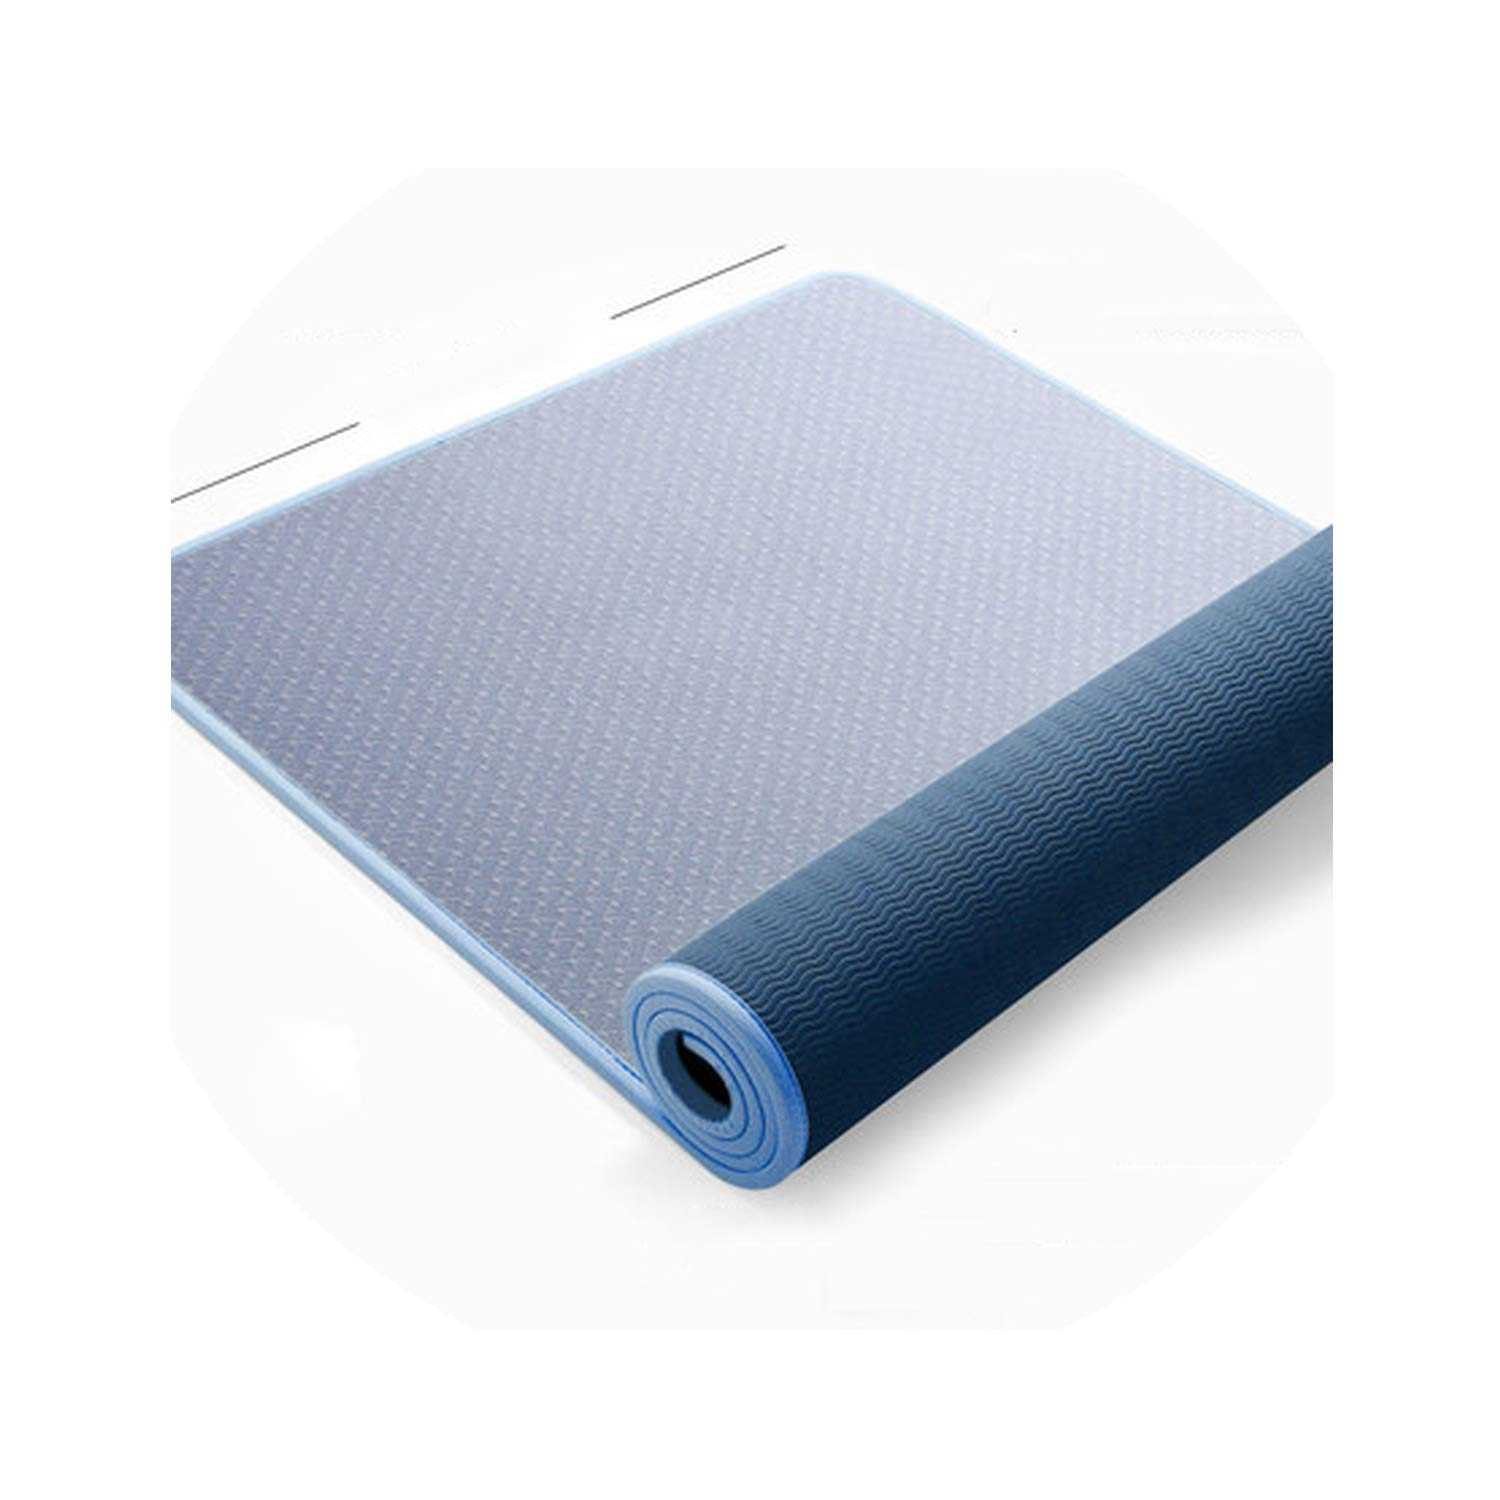 Amazon.com : I Need-You 10mm Multifunctional Non-Slip Yoga ...